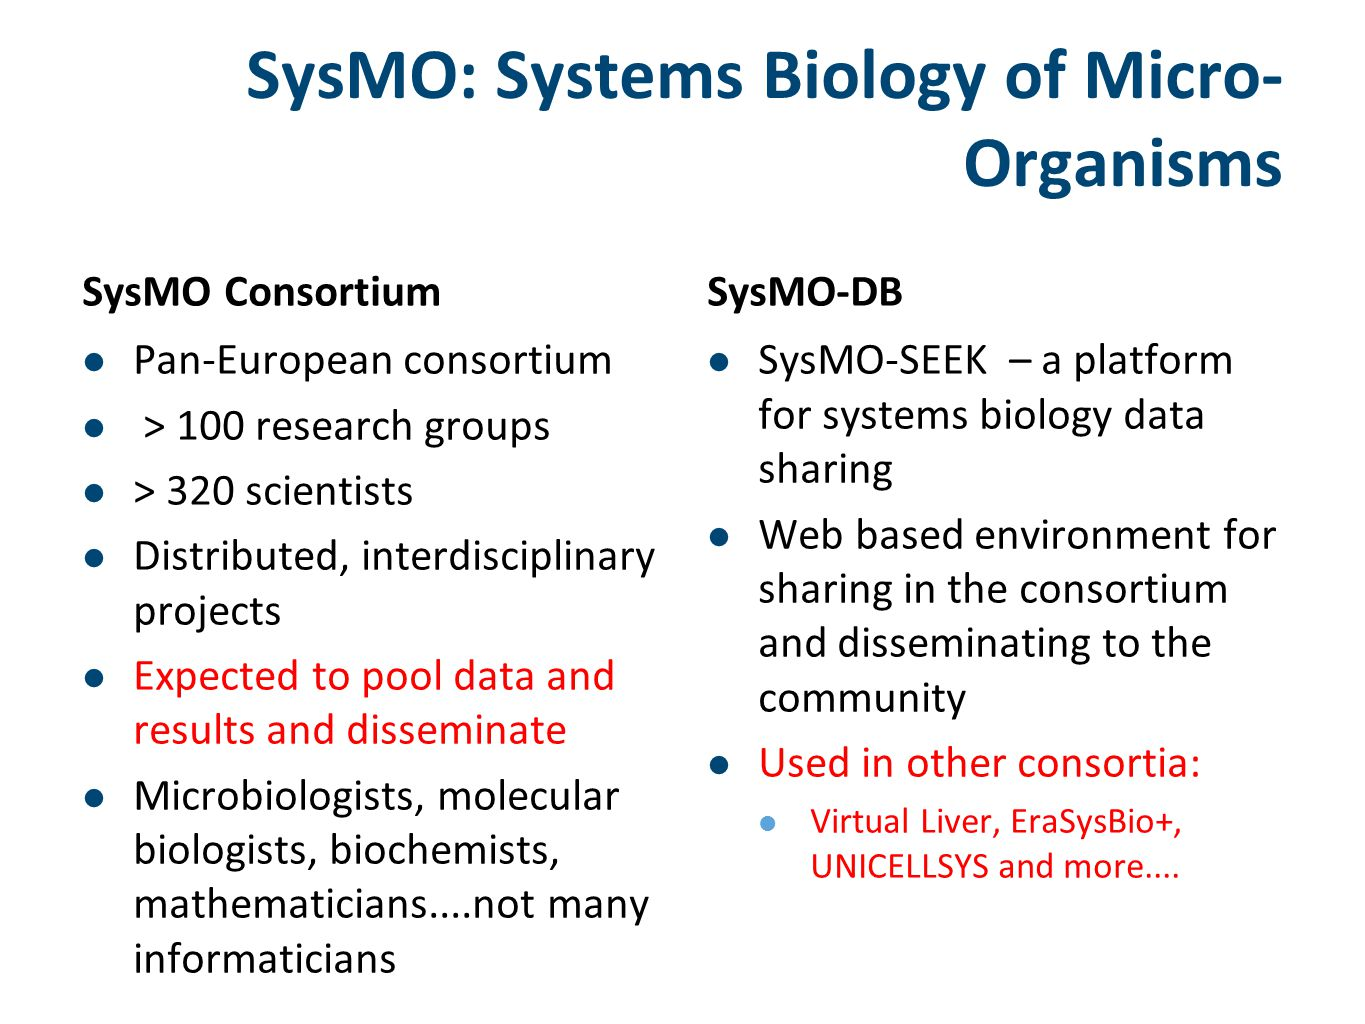 SysMO: Systems Biology of Micro- Organisms SysMO Consortium Pan-European consortium > 100 research groups > 320 scientists Distributed, interdisciplinary projects Expected to pool data and results and disseminate Microbiologists, molecular biologists, biochemists, mathematicians....not many informaticians SysMO-DB SysMO-SEEK – a platform for systems biology data sharing Web based environment for sharing in the consortium and disseminating to the community Used in other consortia: Virtual Liver, EraSysBio+, UNICELLSYS and more....